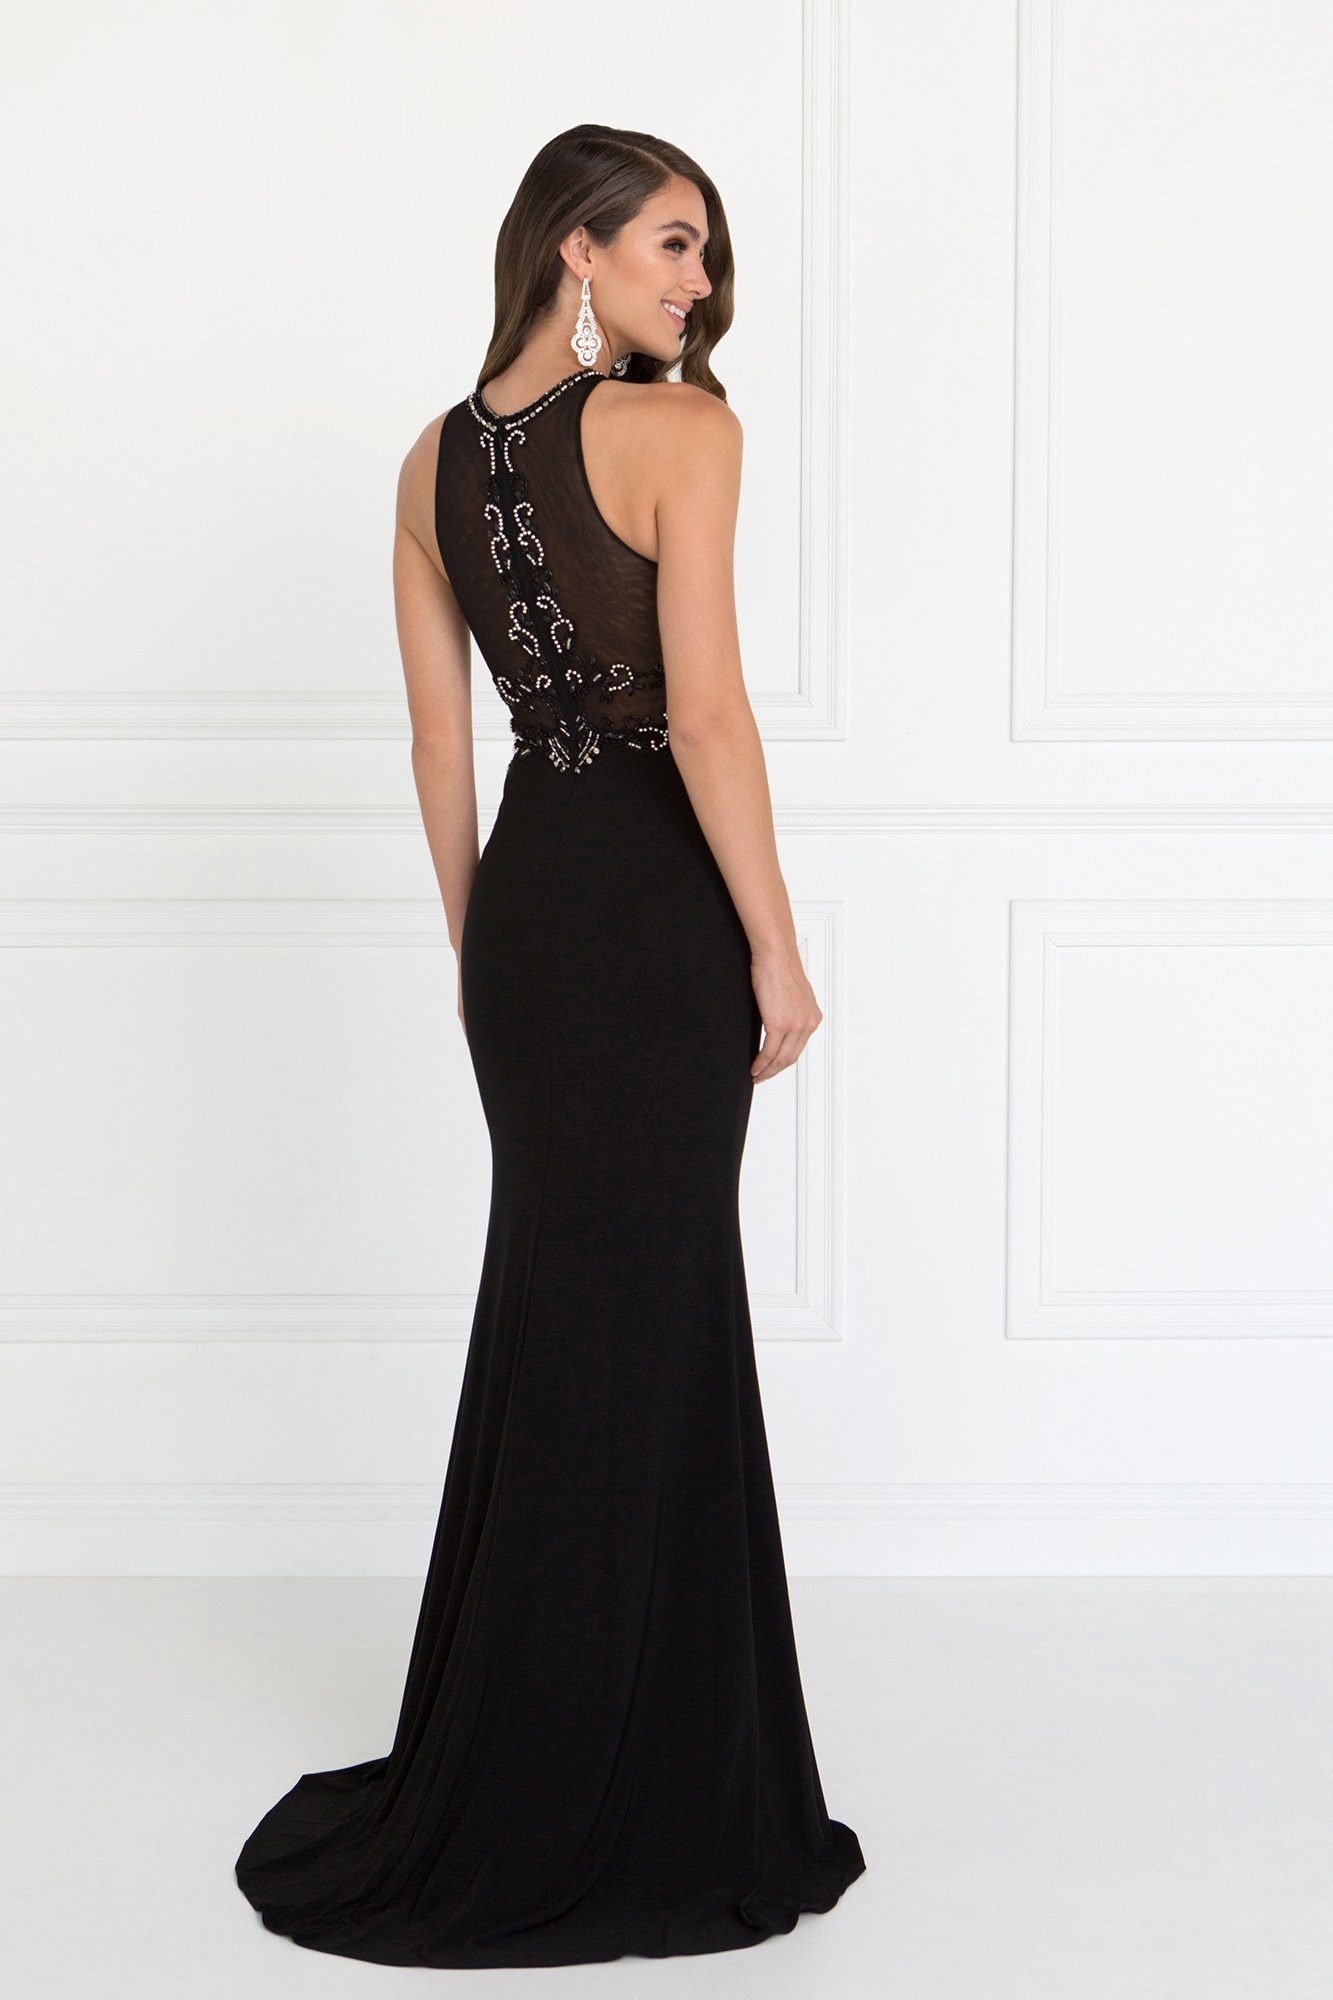 5f5e9d3adc ... Long black evening gown gls 2298-Simply Fab Dress